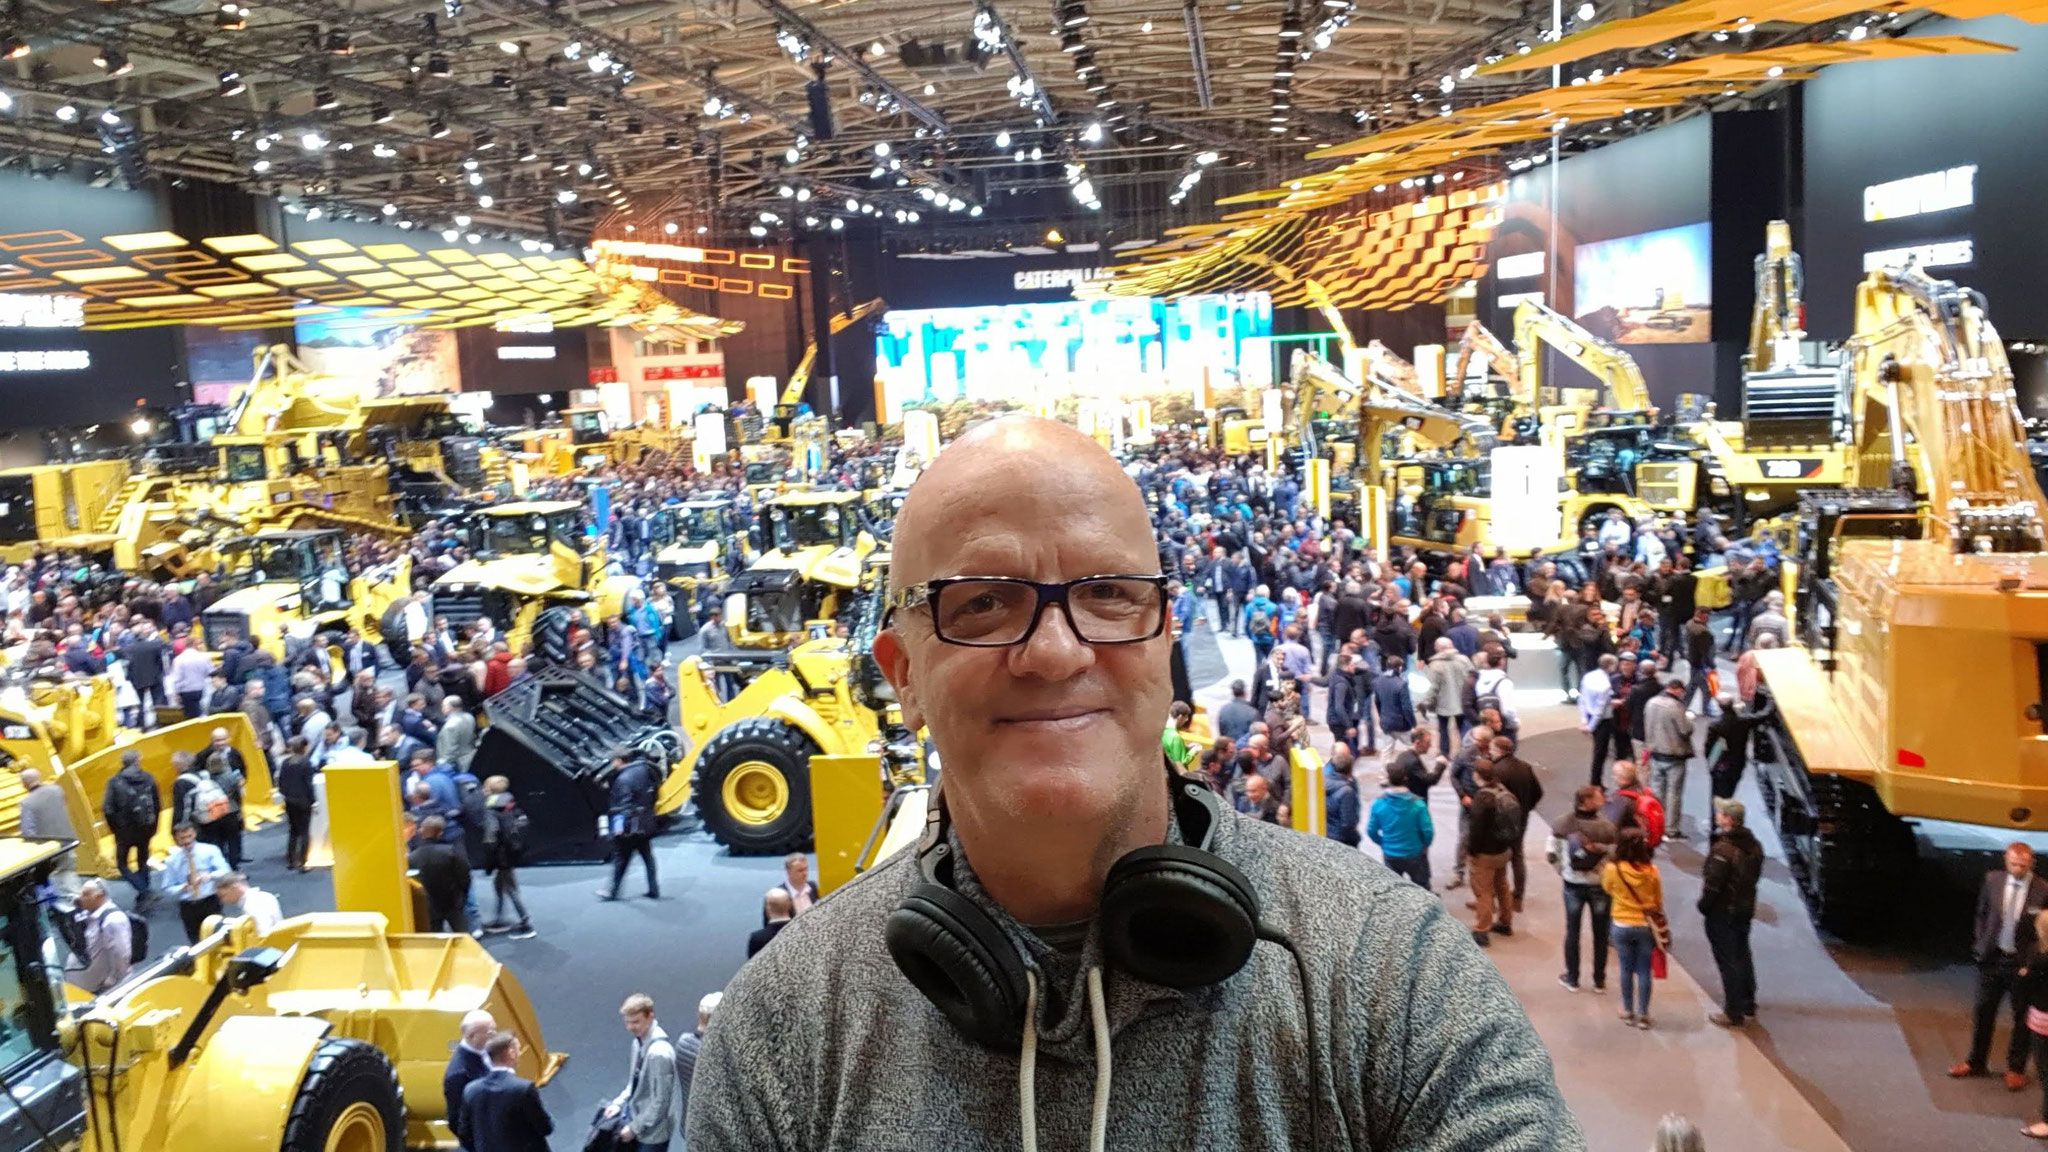 DJing @ biggest Fair in the World - BauMa Munich